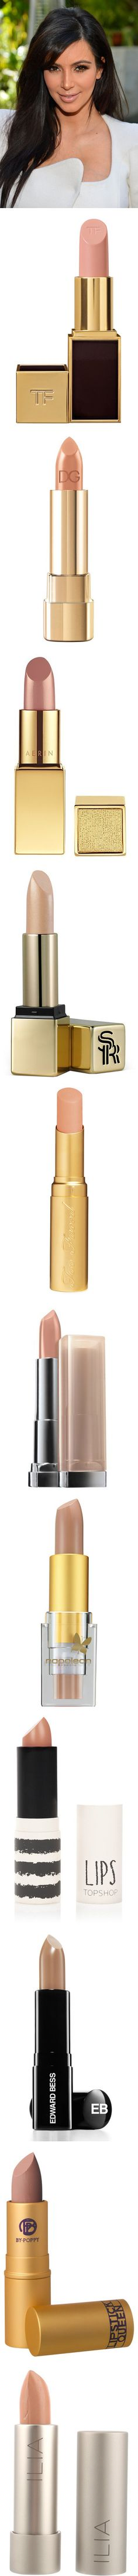 Get the Look: Kim Kardashian's Nude Lip by polyvore-editorial on Polyvore featuring kimkardashian, nudelipstick, women's fashion, accessories, hair accessories, kim kardashian, long hair accessories, short hair accessories, beauty products and makeup